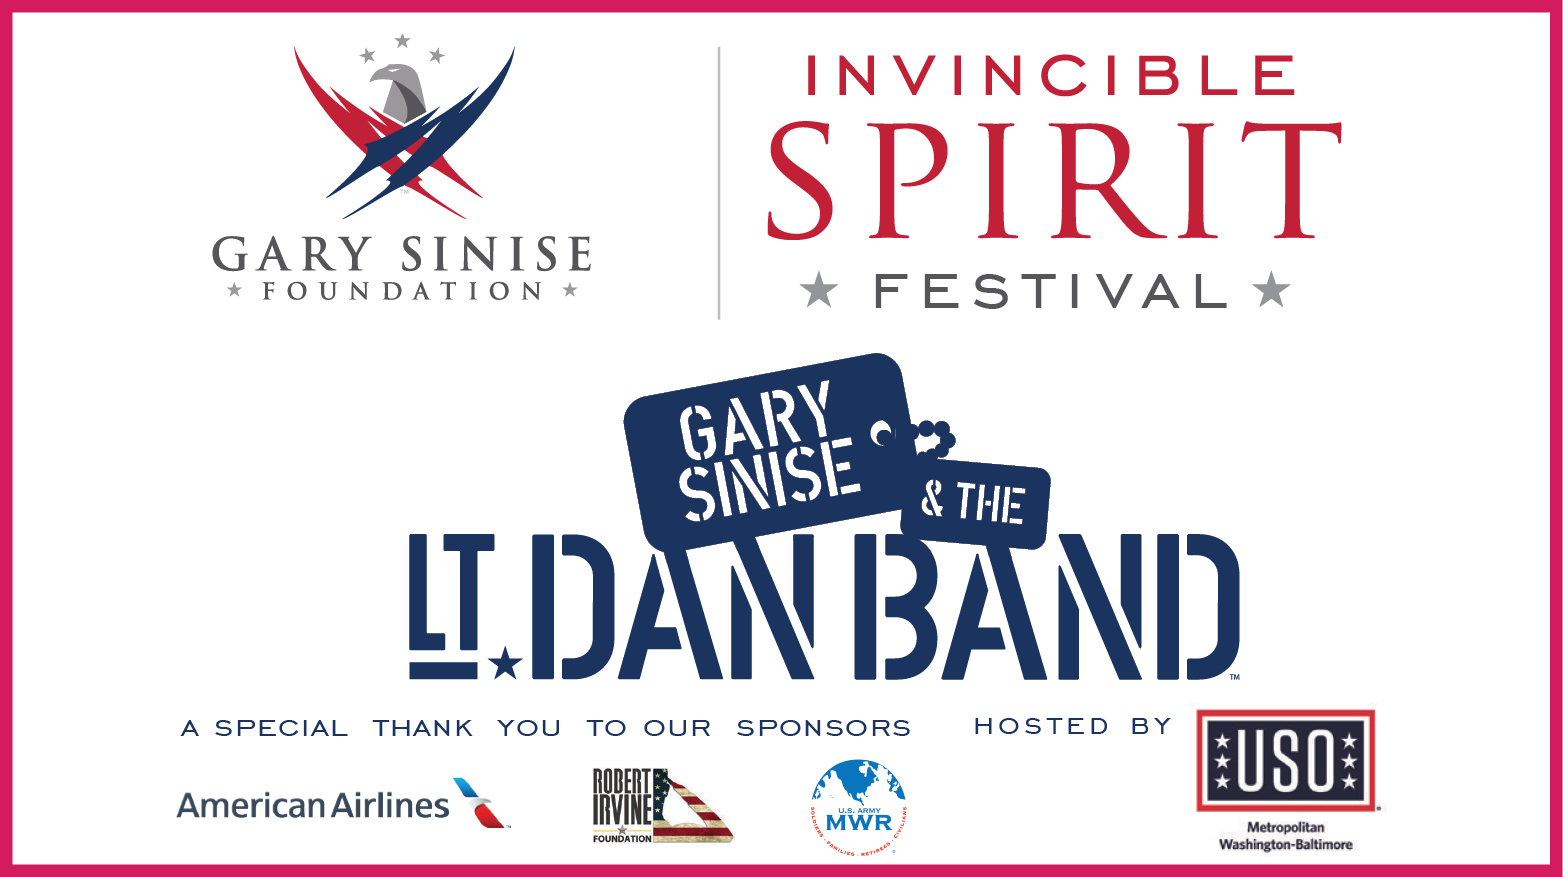 Invincible Spirit Festival: Featuring Gary Sinise & the Lt. Dan Band